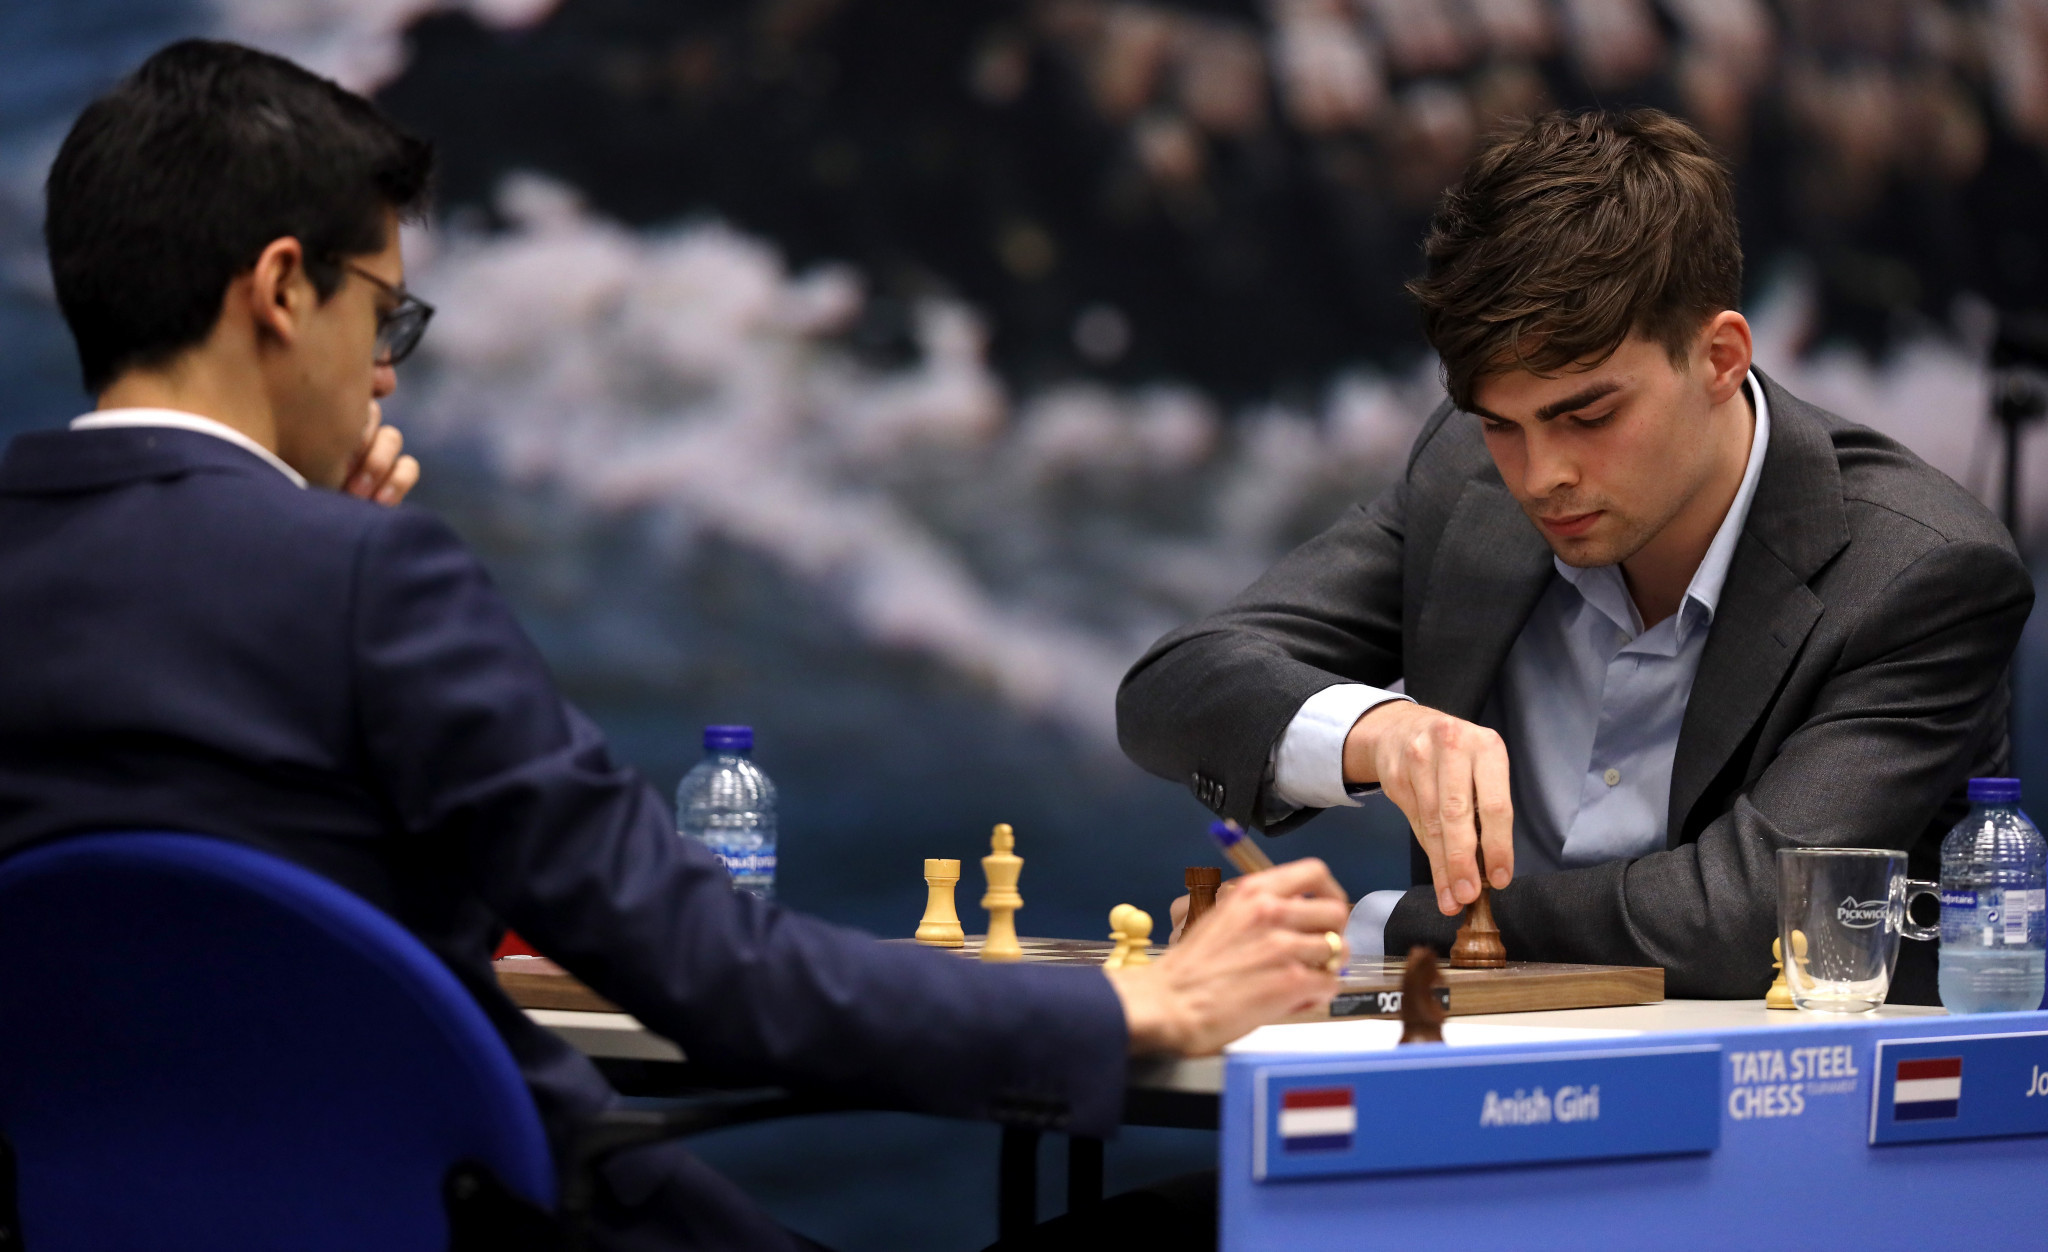 FIDE launch call for host cities for 2022 events